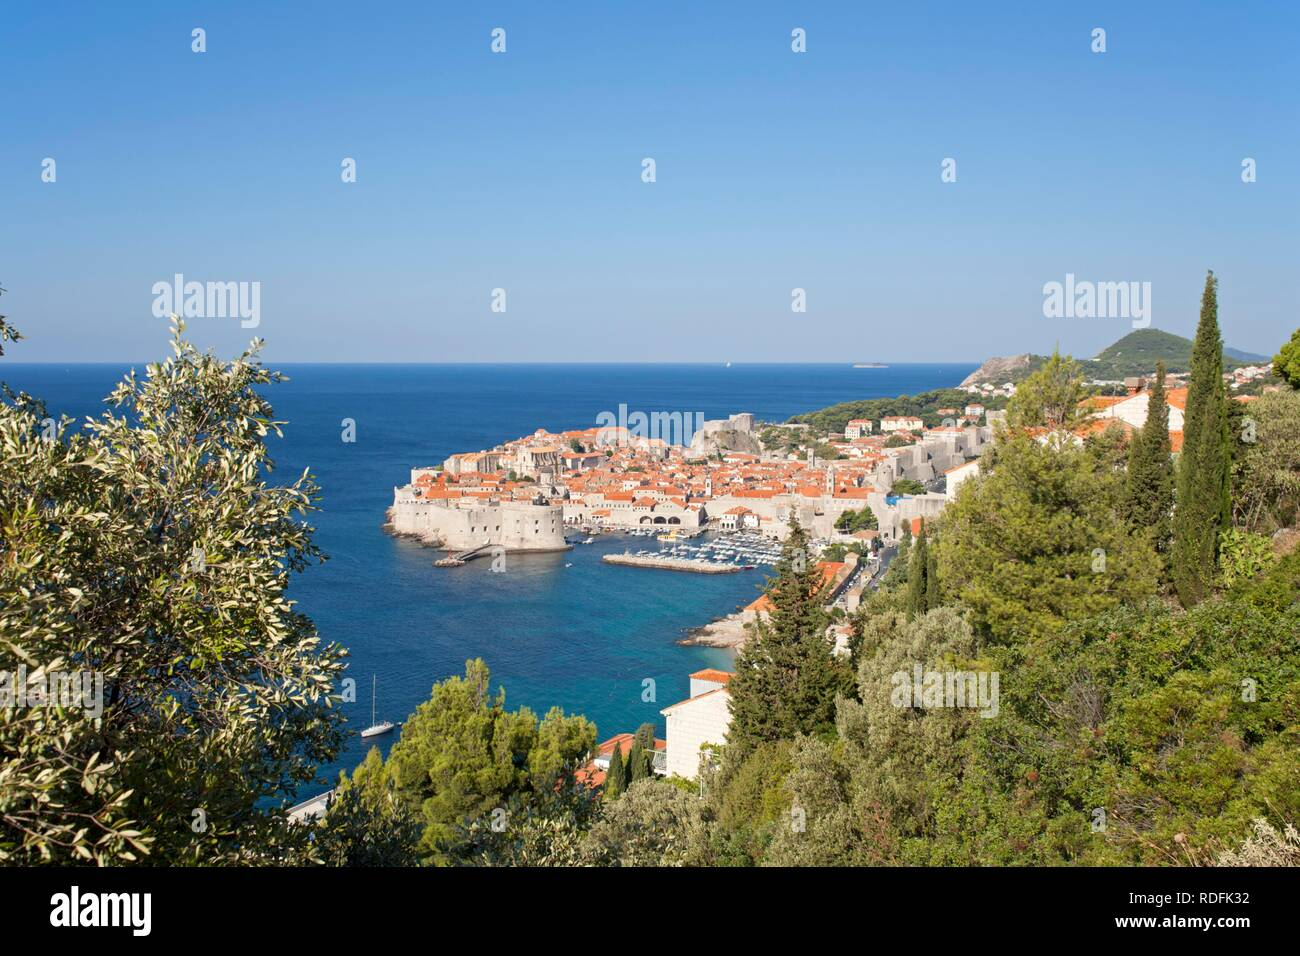 View over Dubrovnik from Srd Mountain, Croatia, Europe - Stock Image